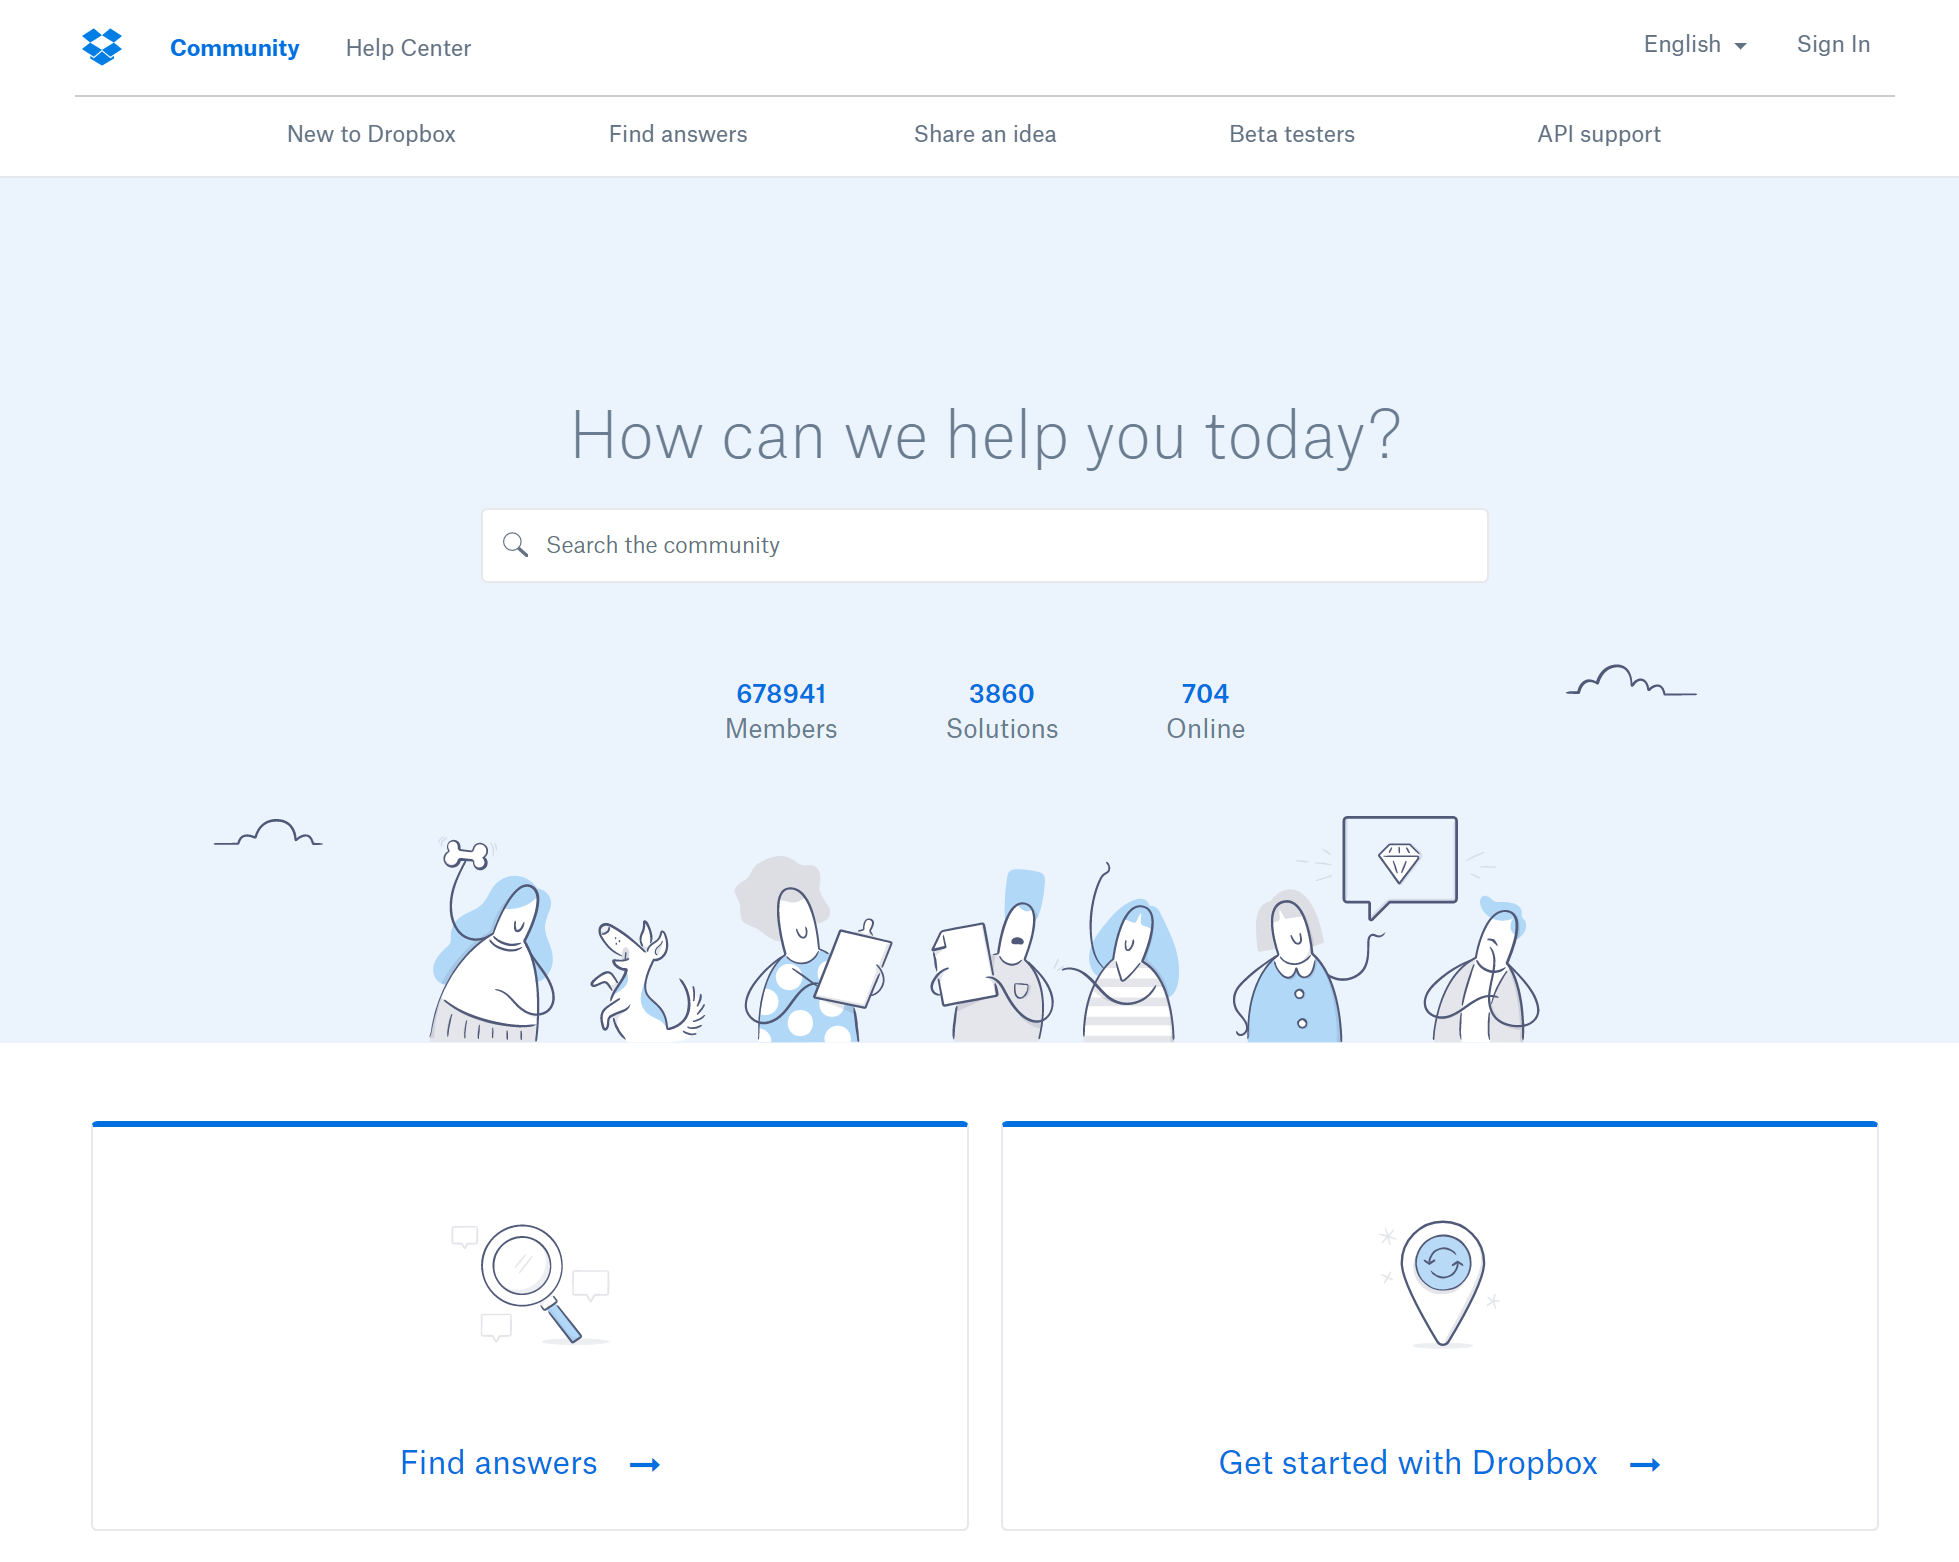 Dropbox illustration style and icons create a great nice